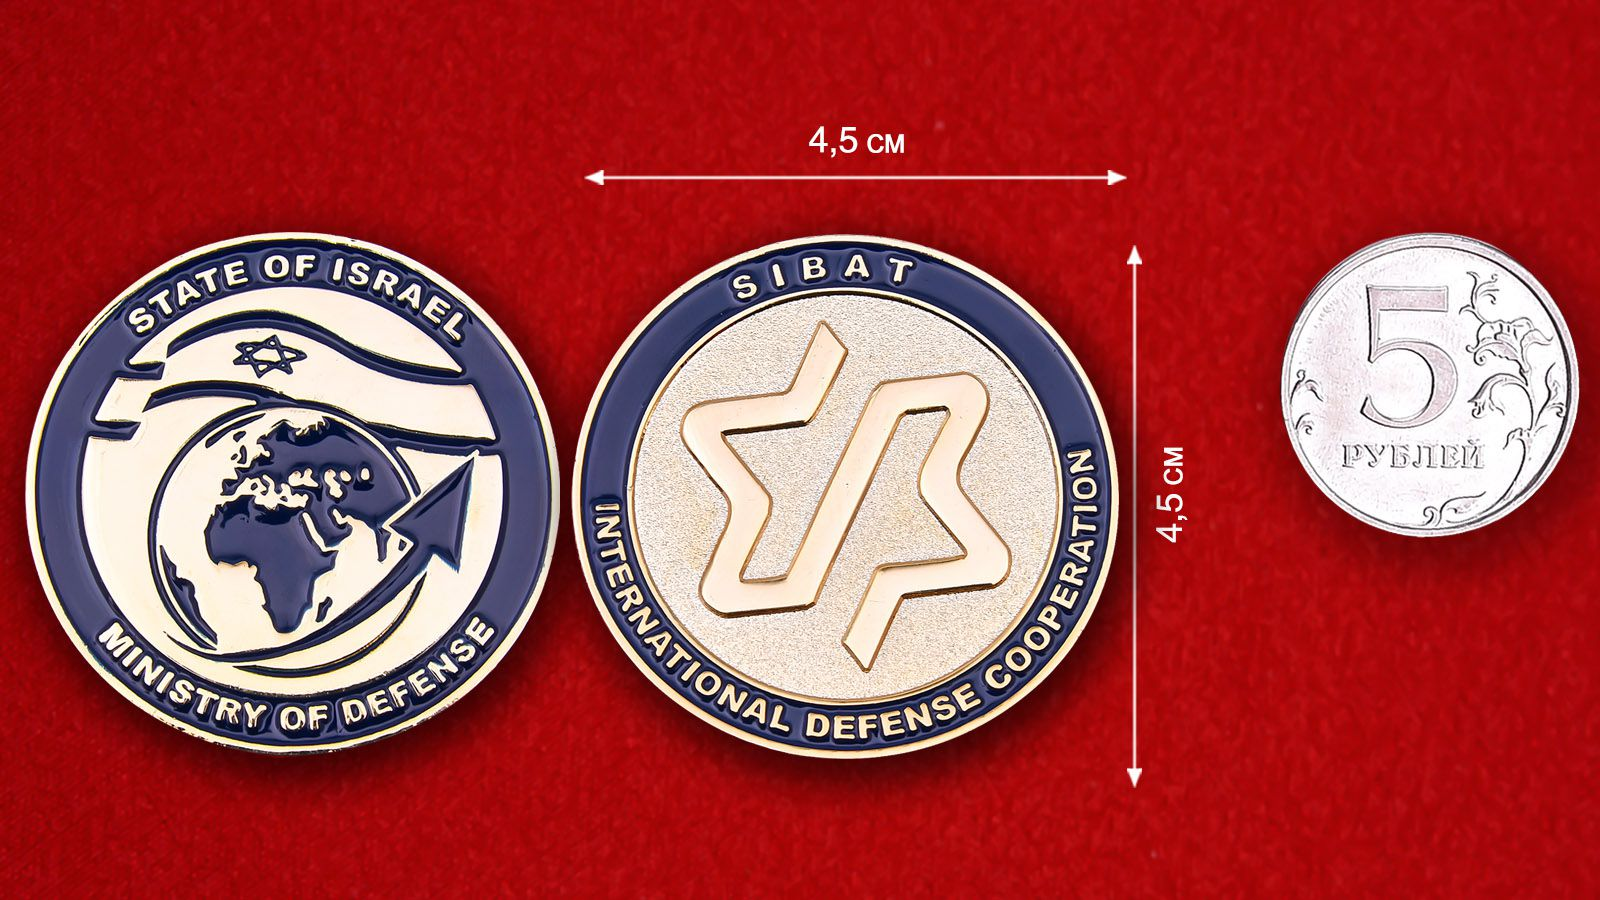 State of Israel Minisnry of defense Challenge Coin - comparative size